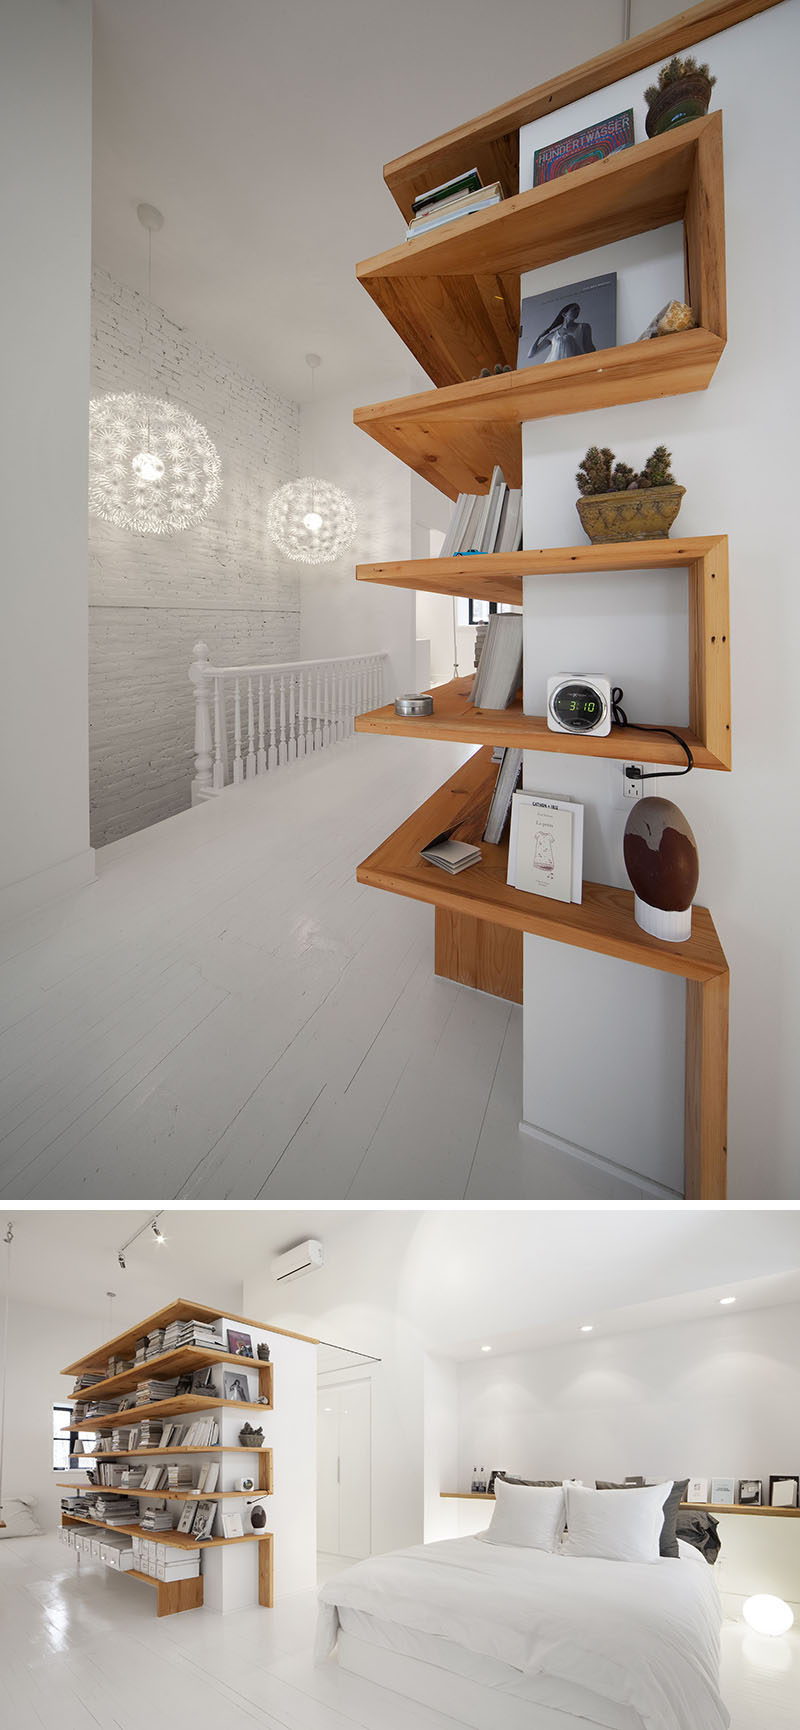 Shelving design idea shelves that wrap around corners for House shelves designs